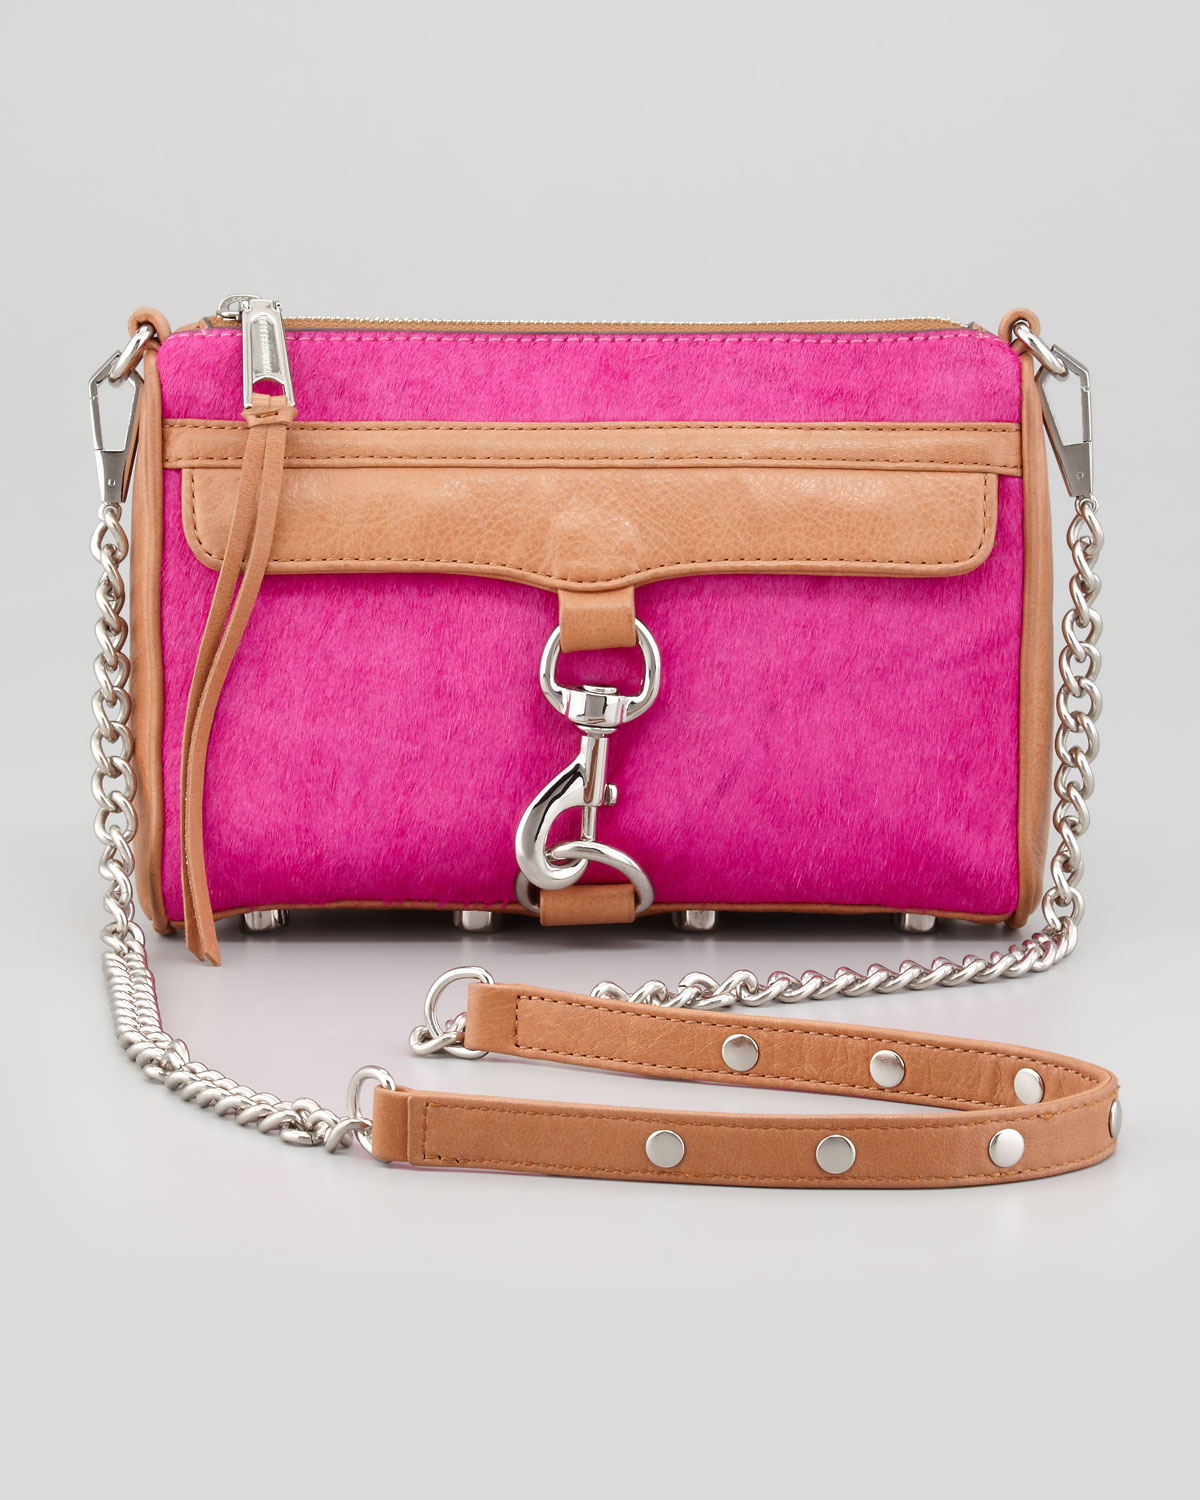 """Shop Women's Rebecca Minkoff Pink Silver size OS Crossbody Bags at a discounted price at Poshmark. Description: Rebecca Minkoff Large MAC Crossbody Bag in the color """"Blush"""" Pink. Genuine leather with silver toned hardware. Comes with original dustbag and extra leather tassels. Brand new condition, took tags off and never used."""